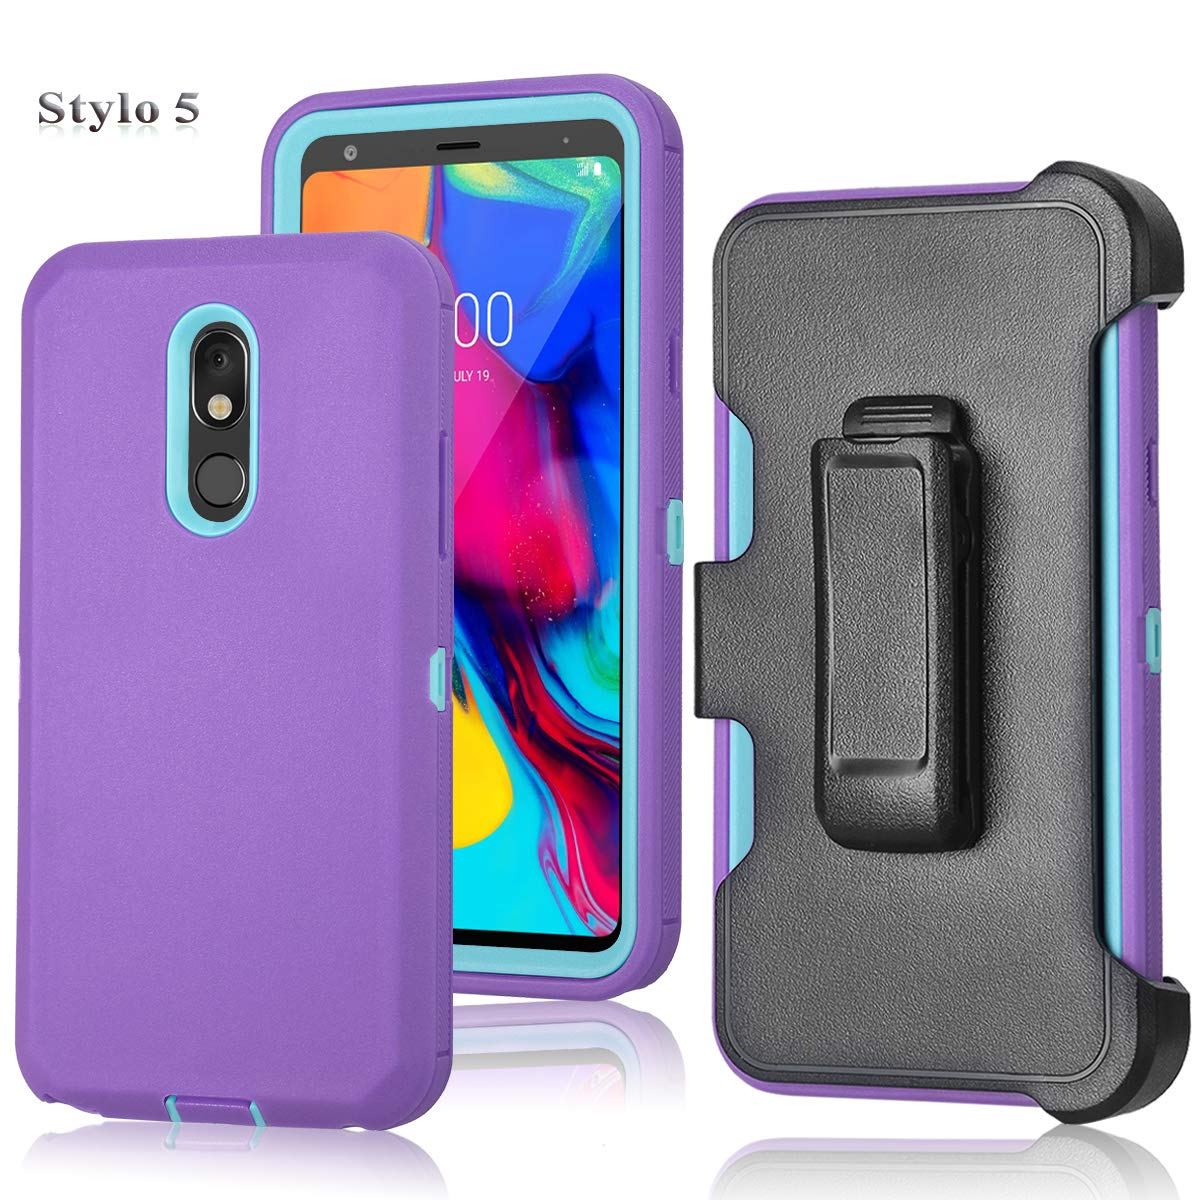 LG Stylo 5 Case, Tri-Layer Heavy Duty [with Built-in Screen Protector] [Kickstand] [Belt Clip] Hybrid High Impact Resistant Rugged Full-Body Shockproof Cover for LG Stylo 5 (Purple/Mint)